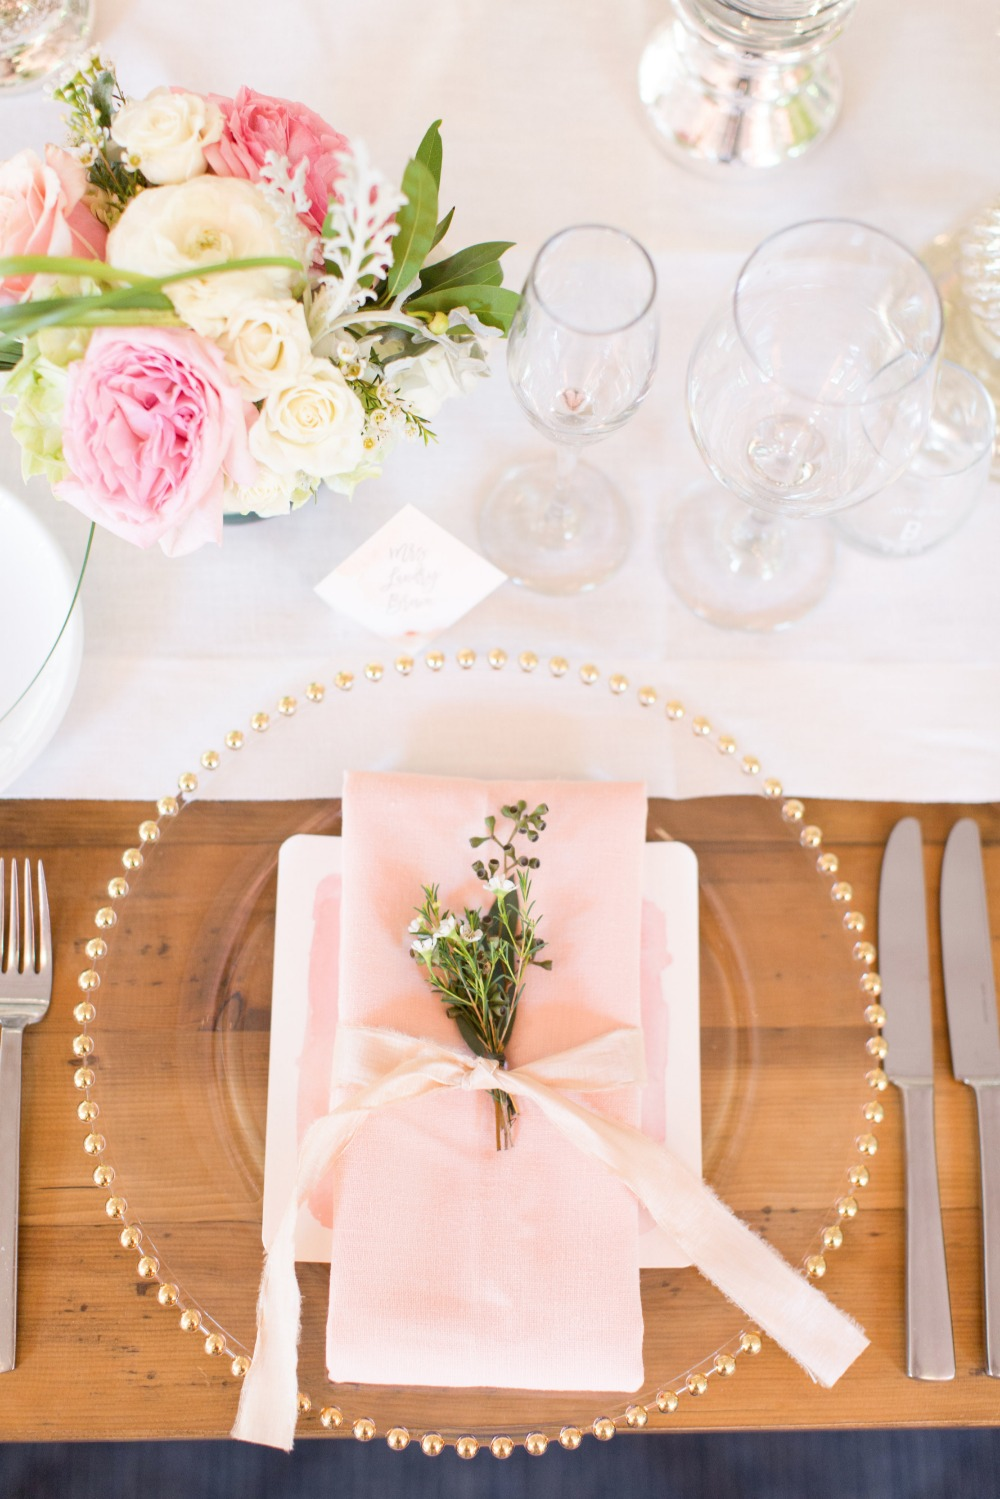 Pink napkin place setting